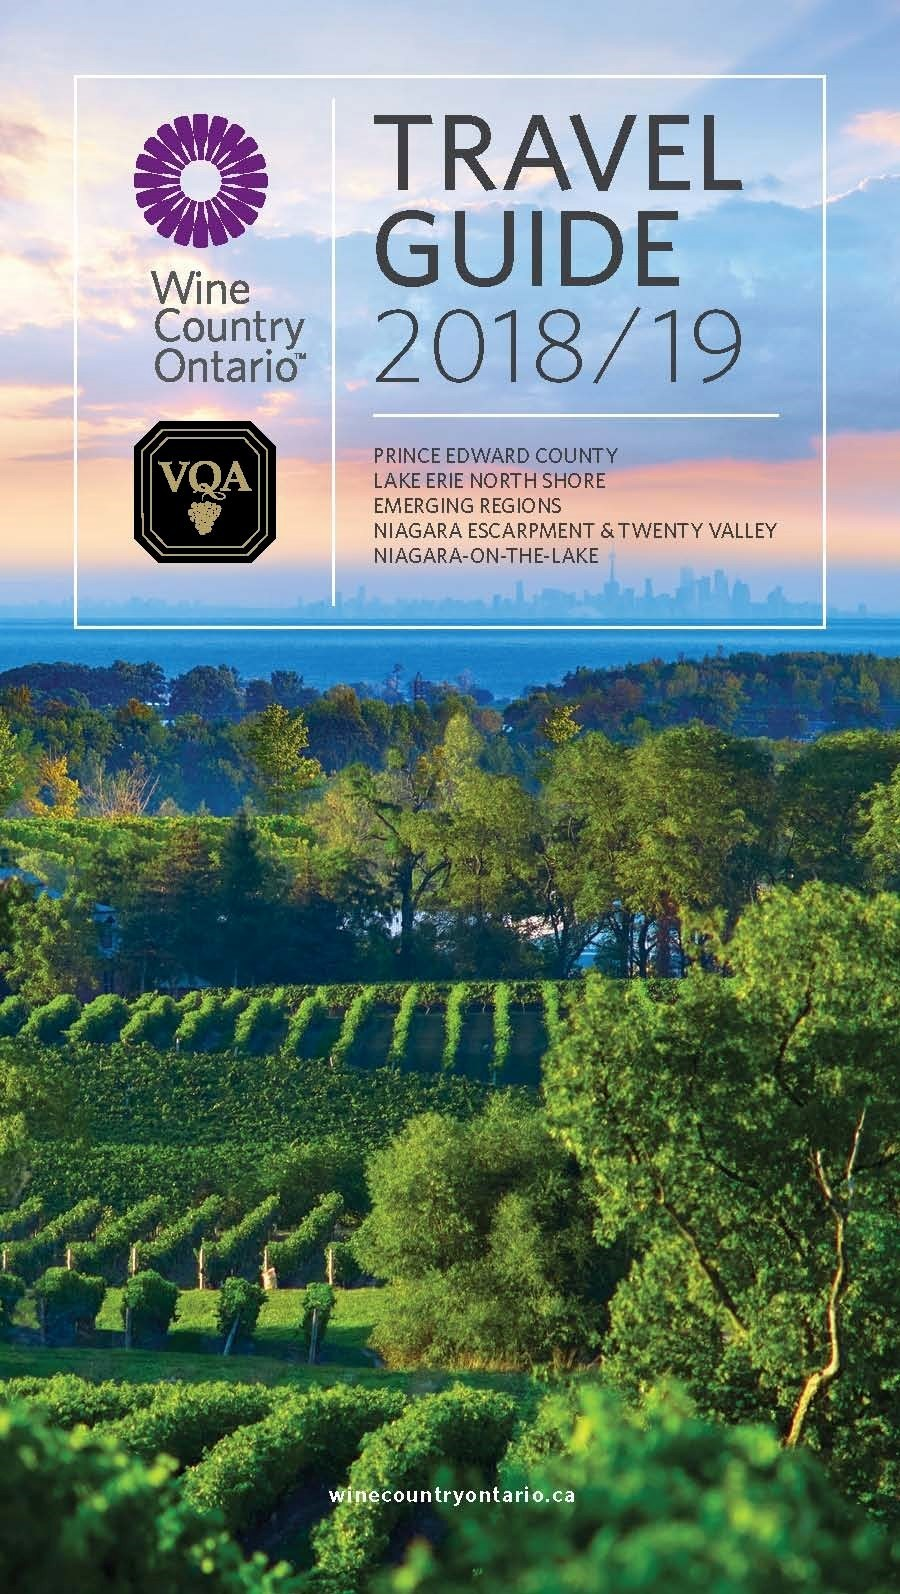 2018/19 Wine Country Ontario and VQA Wines of Ontario Travel Guide Cover (CNW Group/Wine Marketing Association of Ontario)